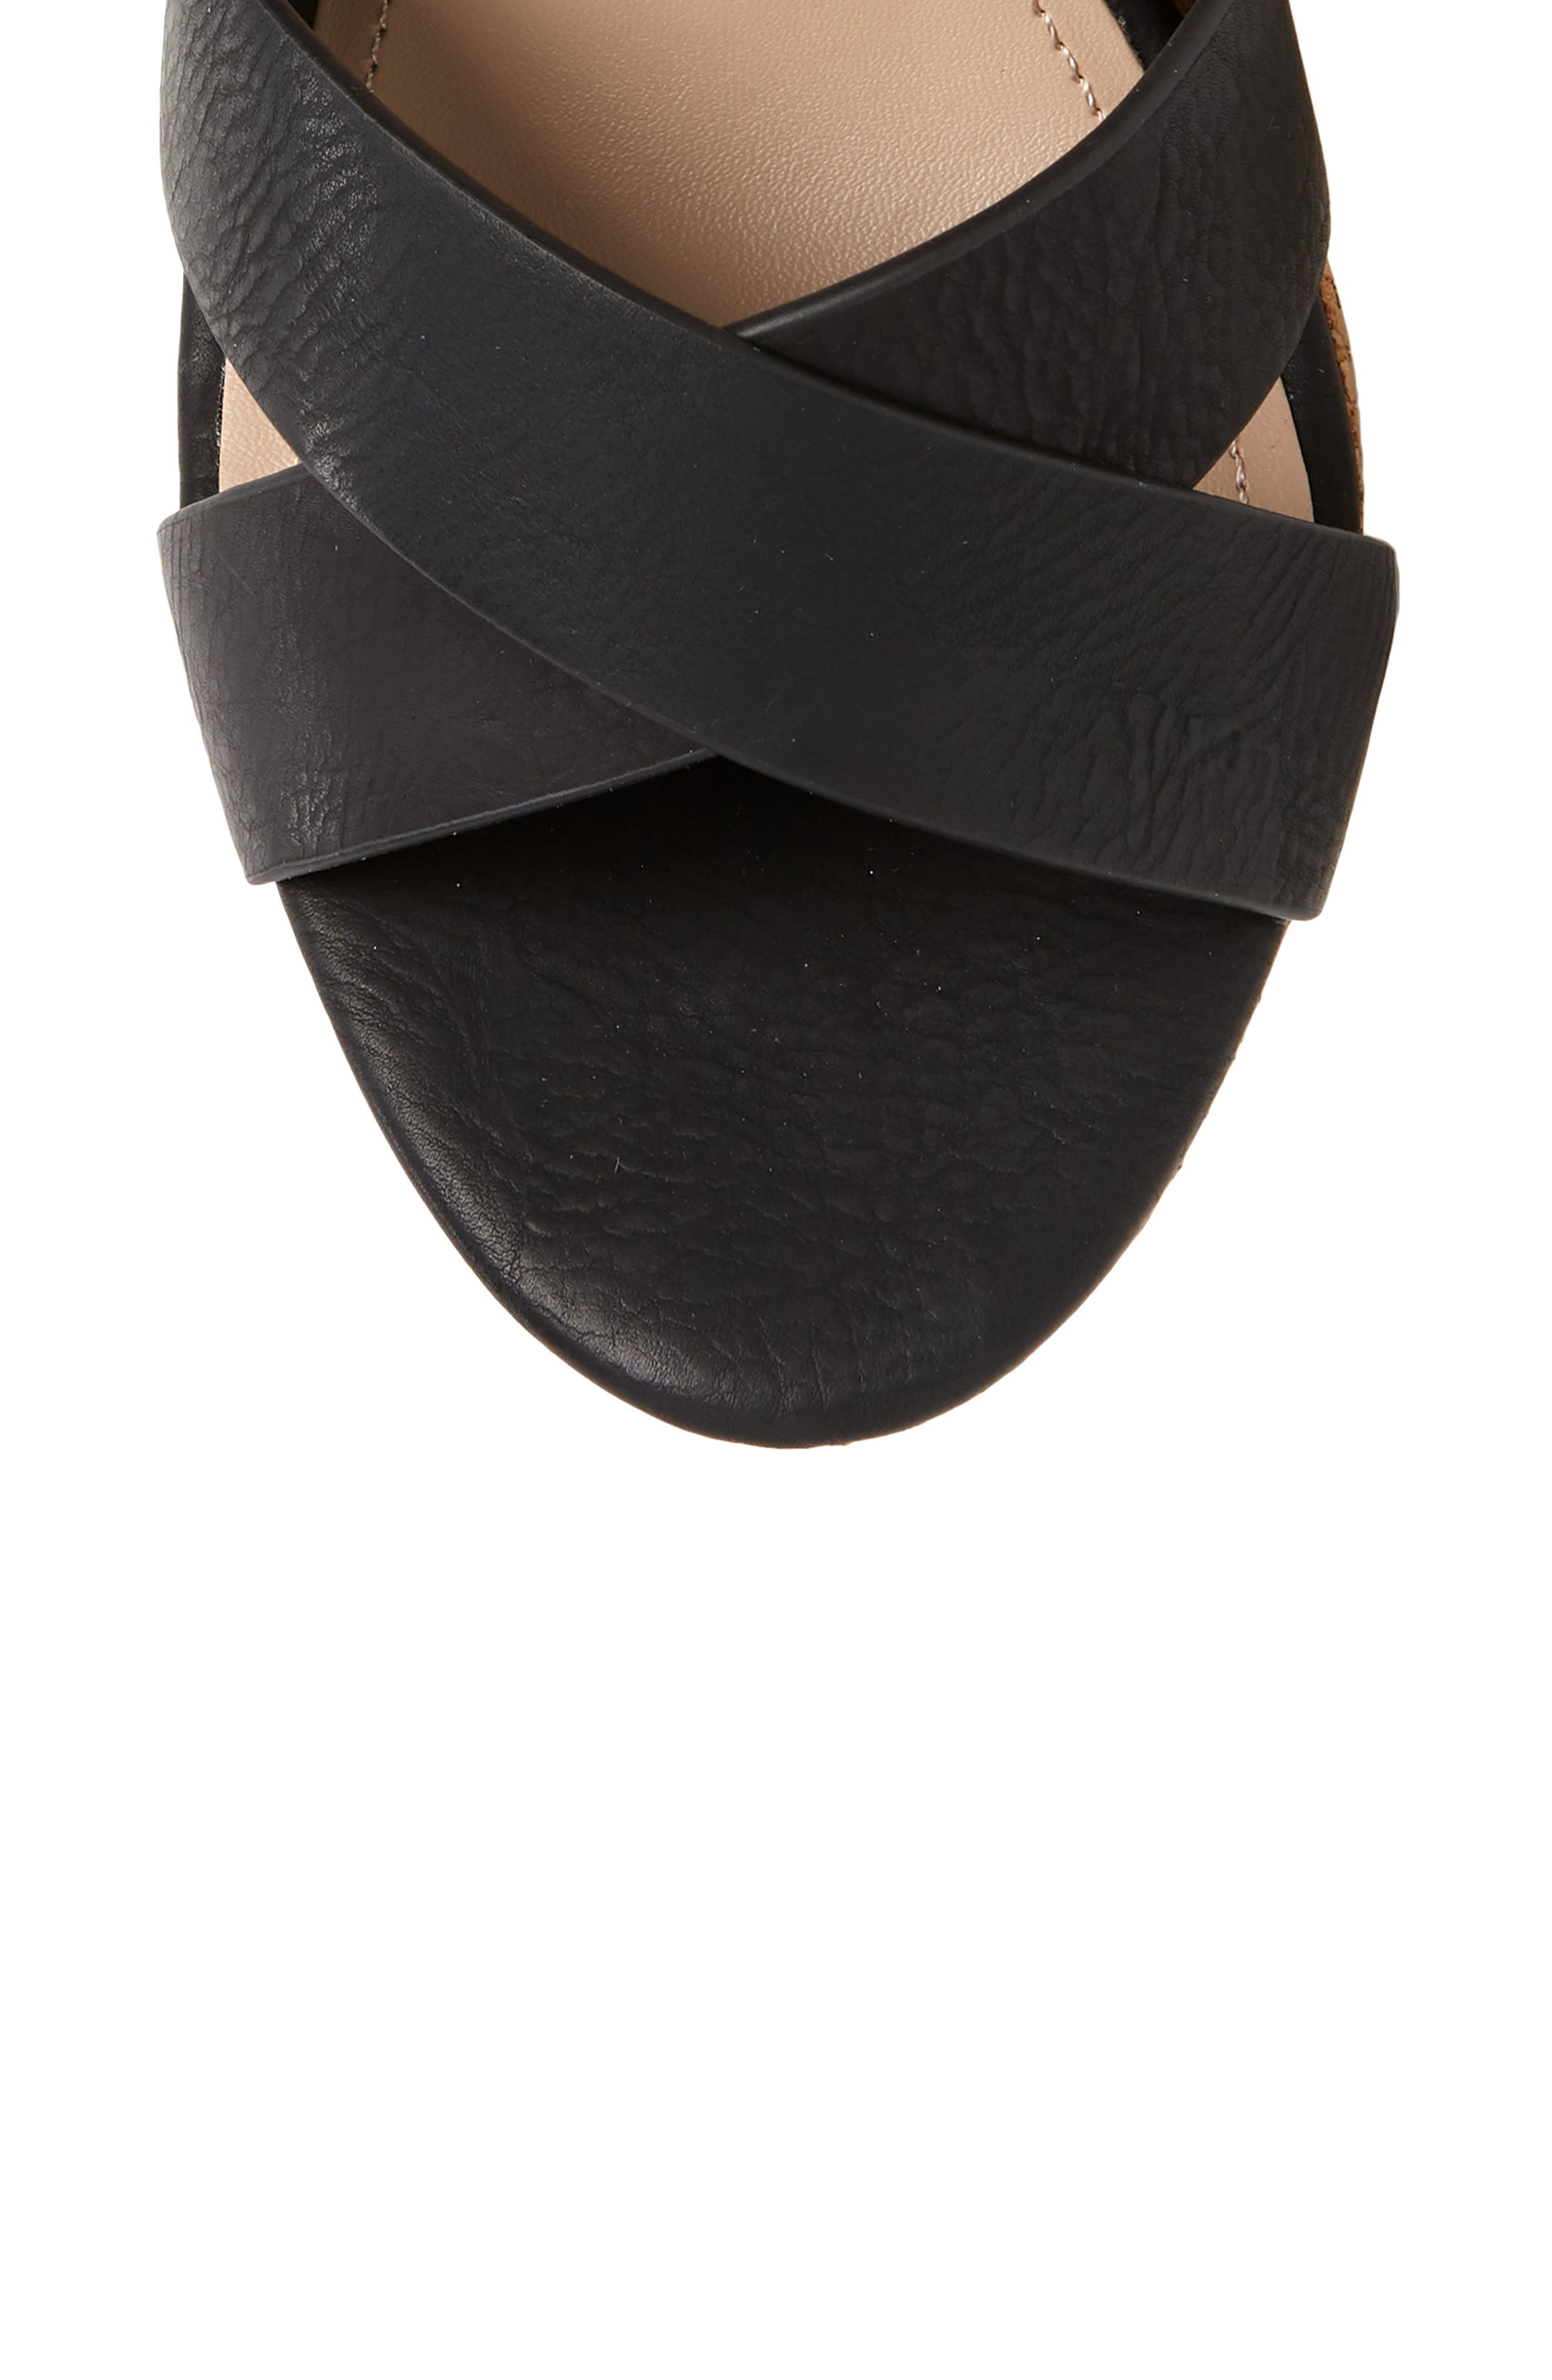 CHARLES BY CHARLES DAVID, Aleck Platform Wedge Sandal, Alternate thumbnail 5, color, BLACK FAUX LEATHER